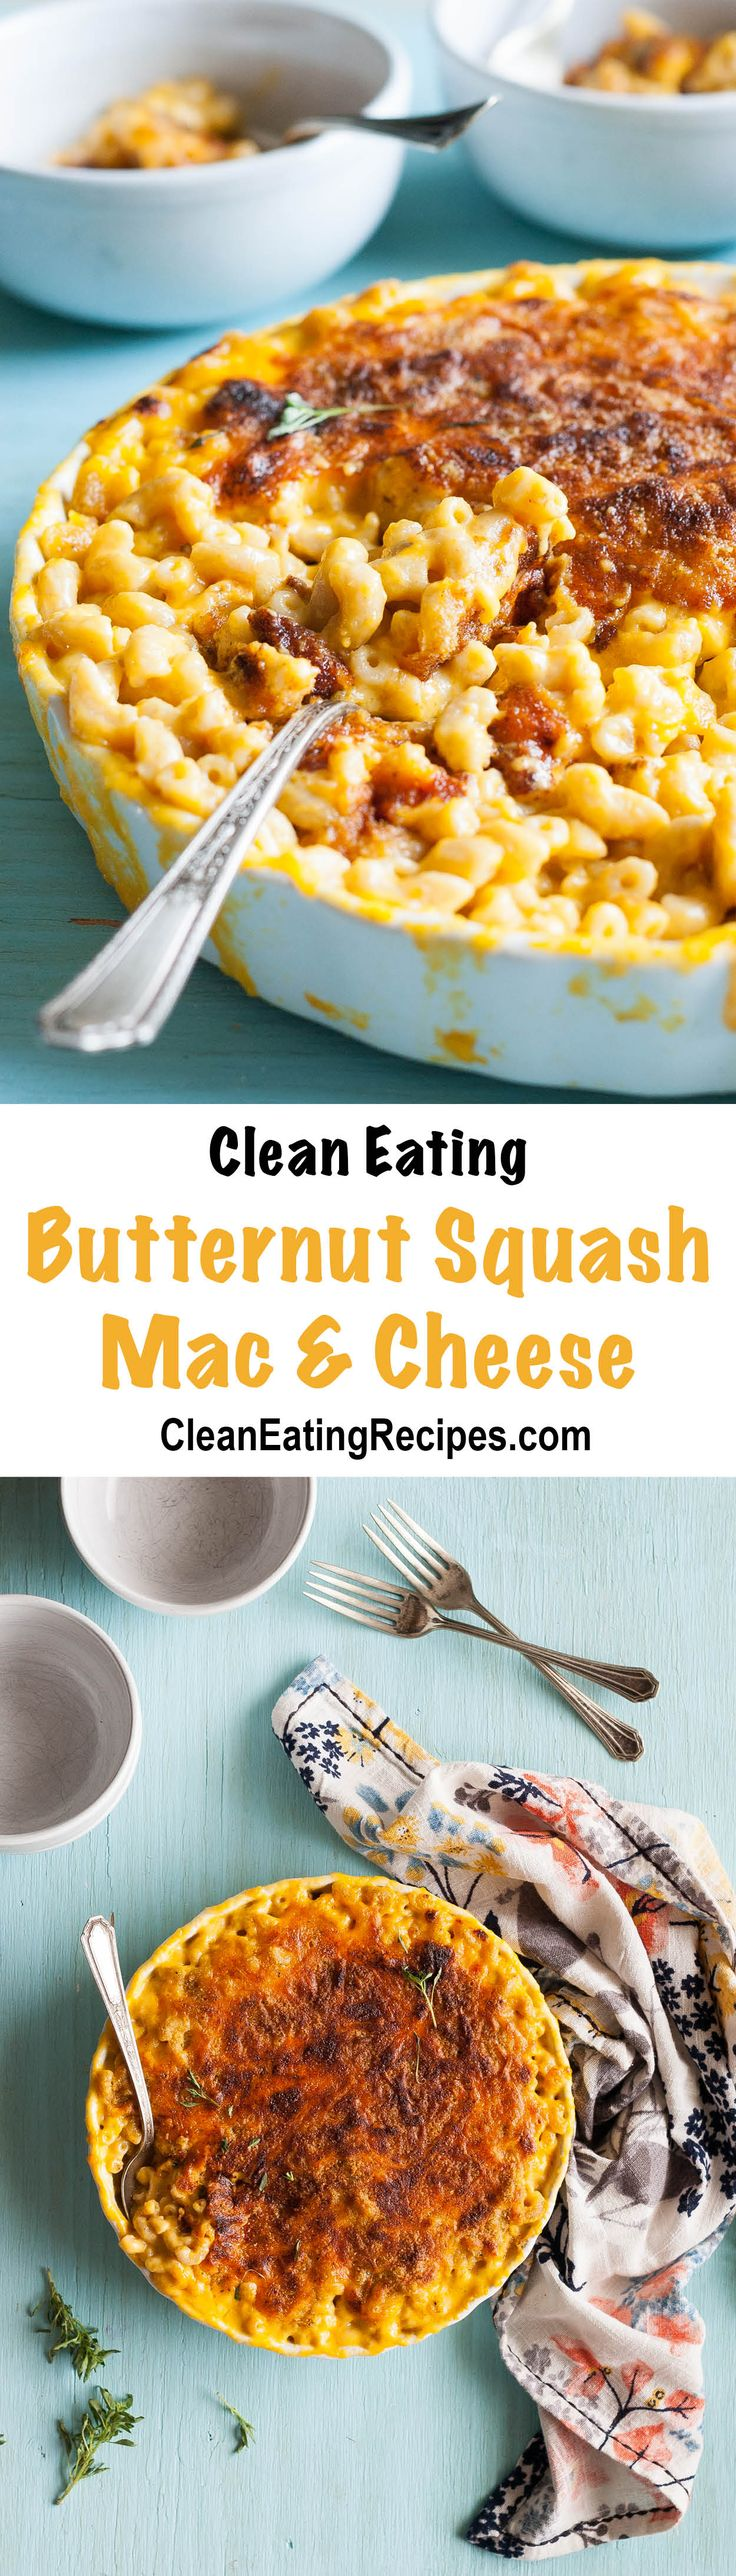 Butternut Squash Clean Eating Macaroni & Cheese Recipe - the squash makes it healthier and creamy, but it still has enough cheese to be delicious!